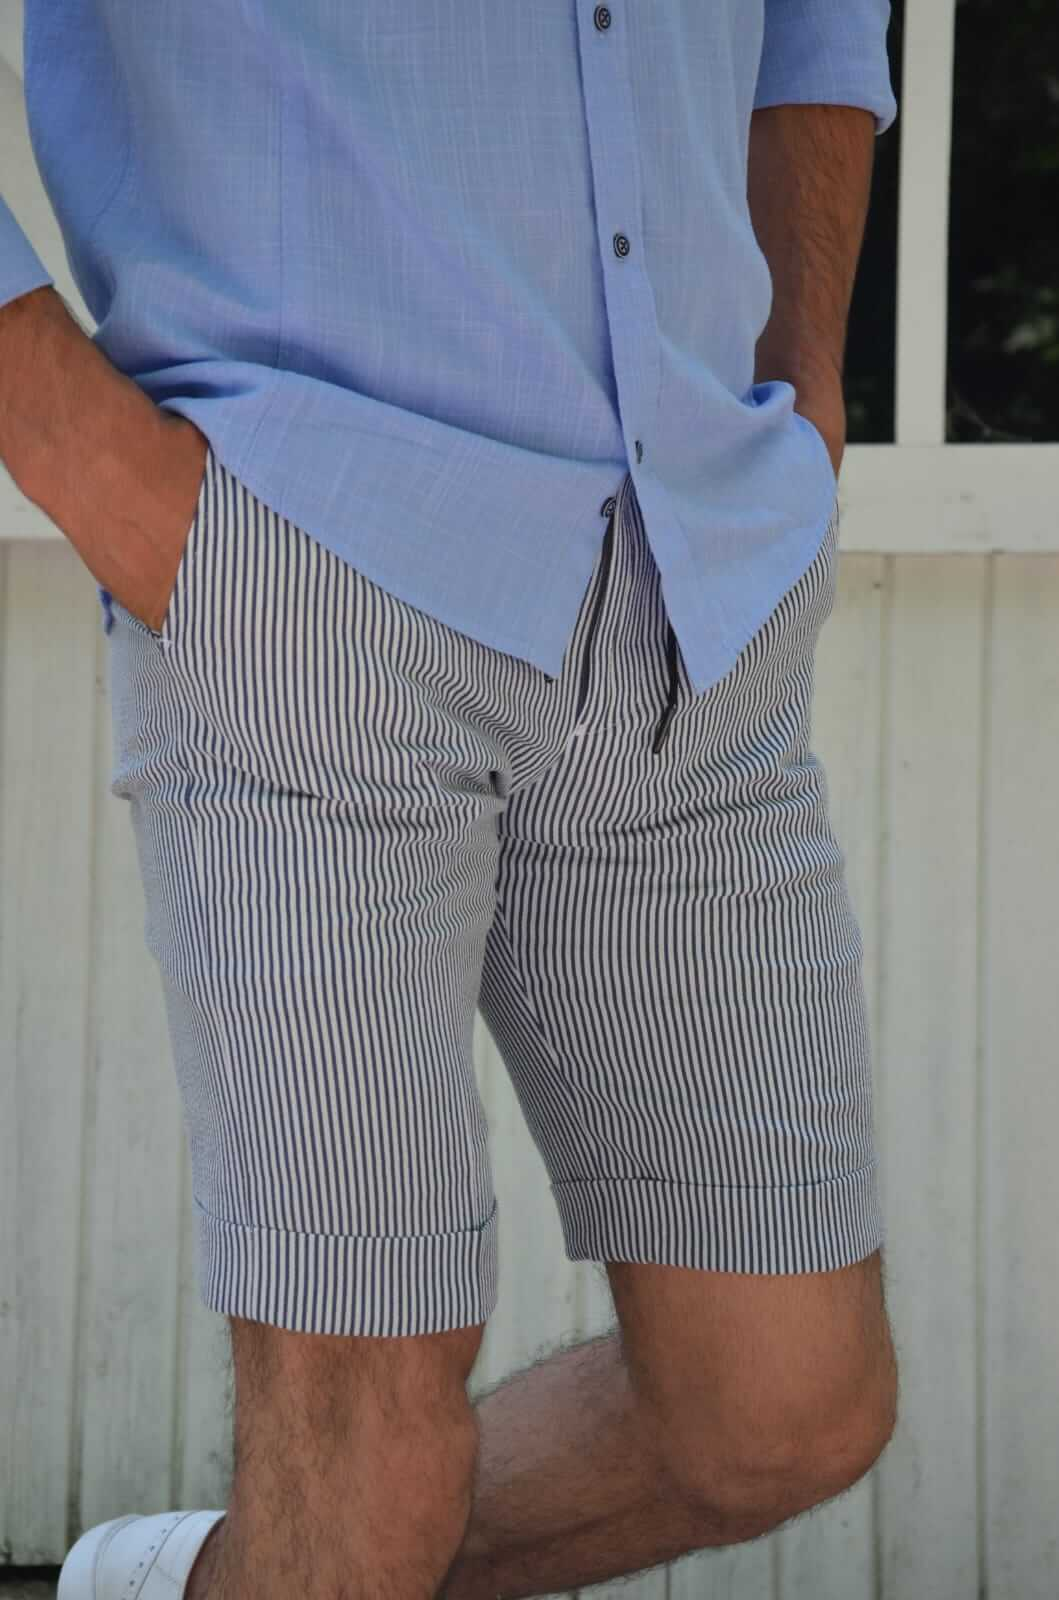 NAVY BLUE SHORTS - Hollo Men